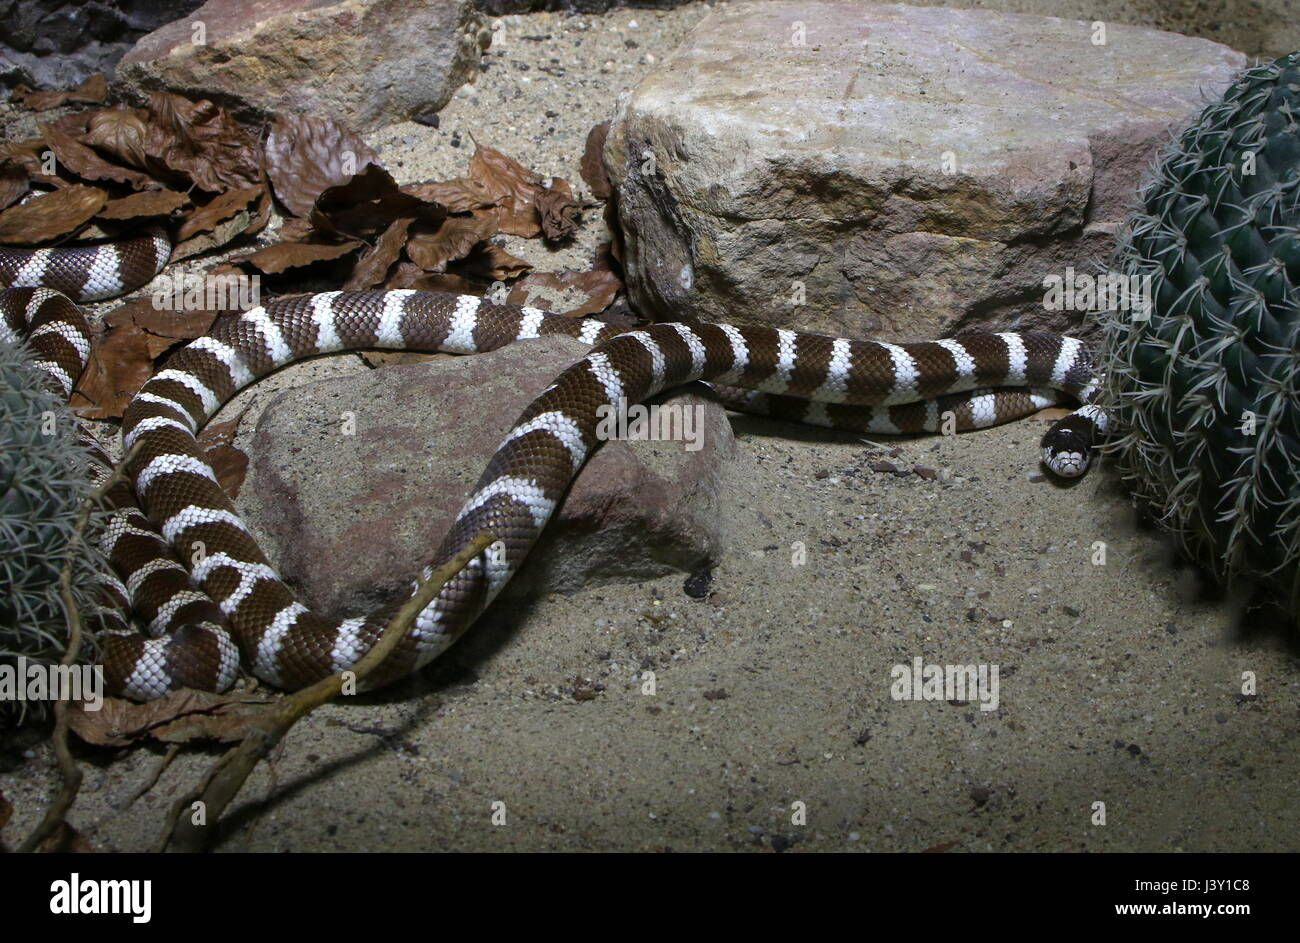 Black and white California Kingsnake (Lampropeltis Californiae, Lampropeltis getula californiae) in closeup - Stock Image